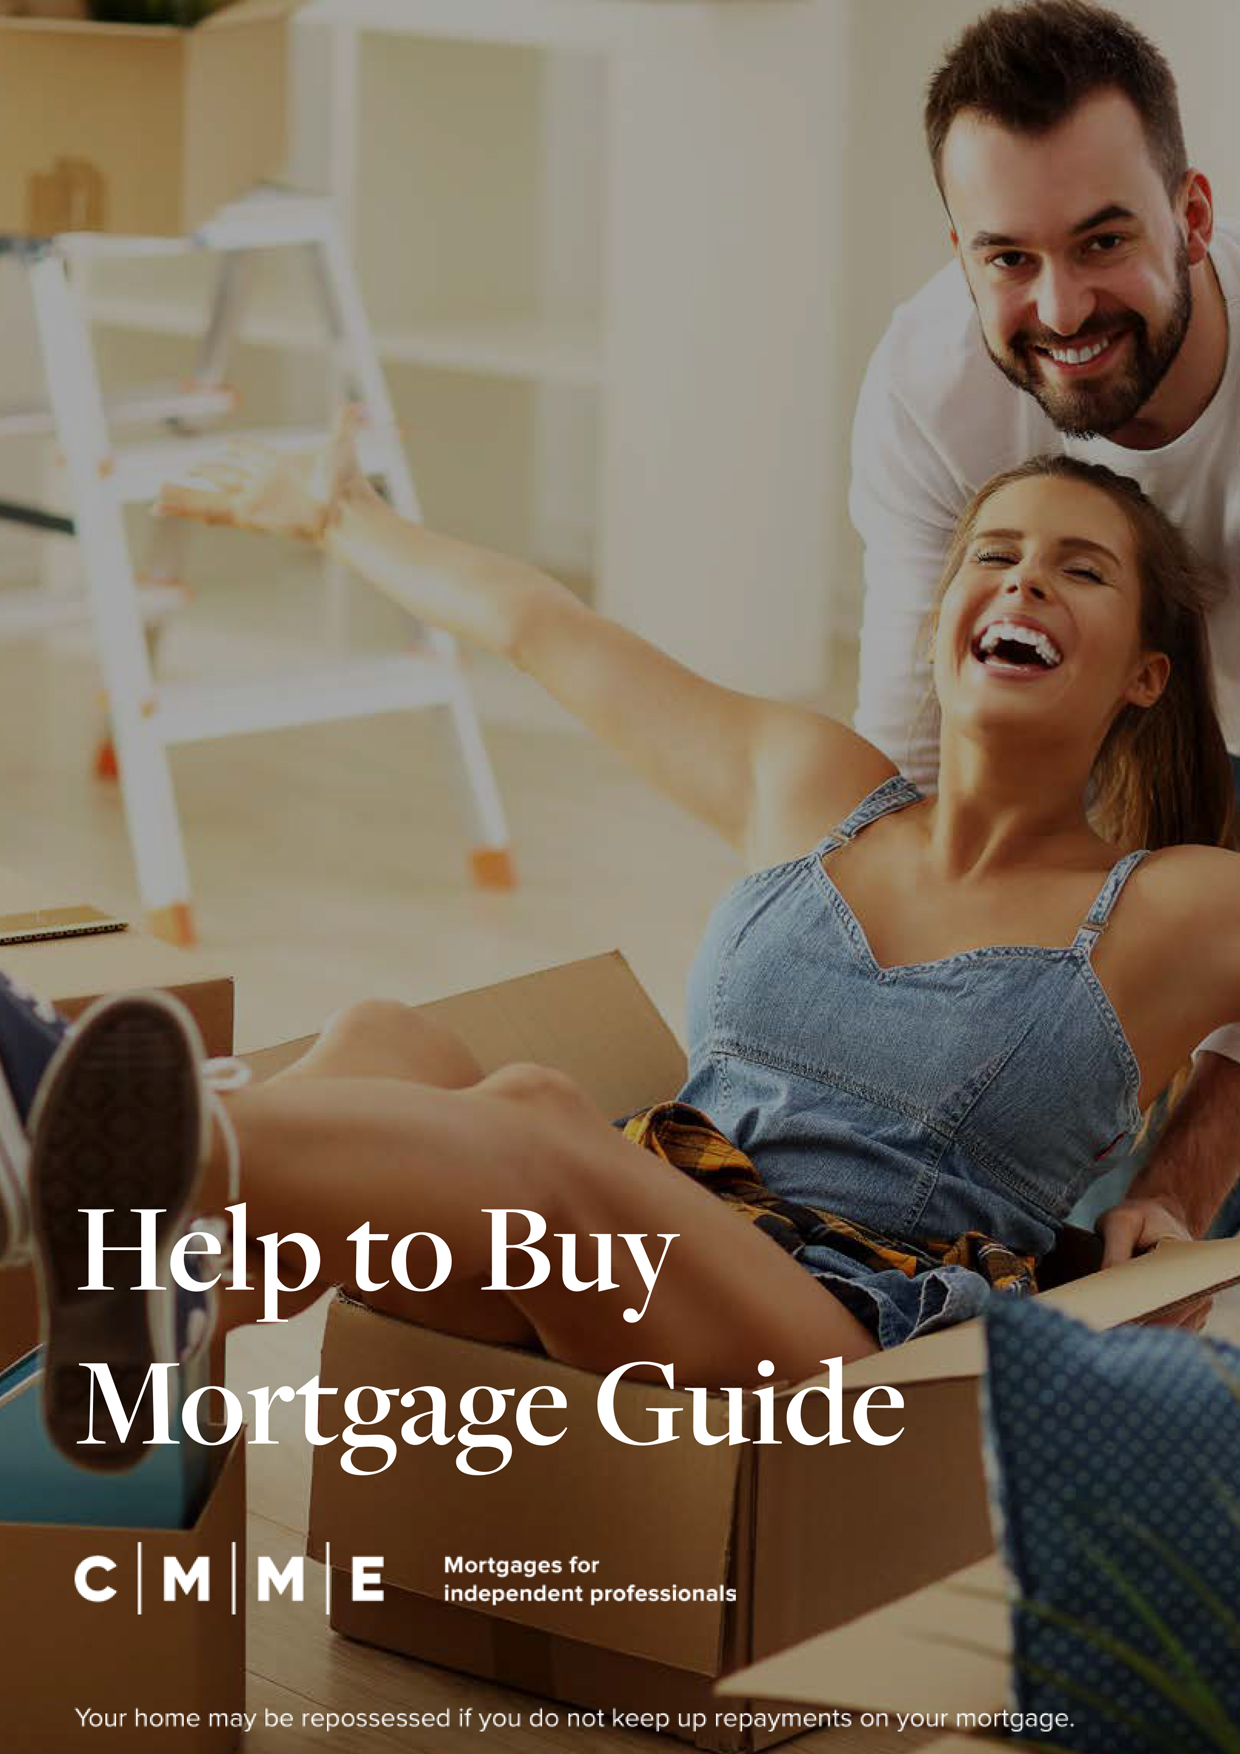 Help To Buy Mortgages Guide